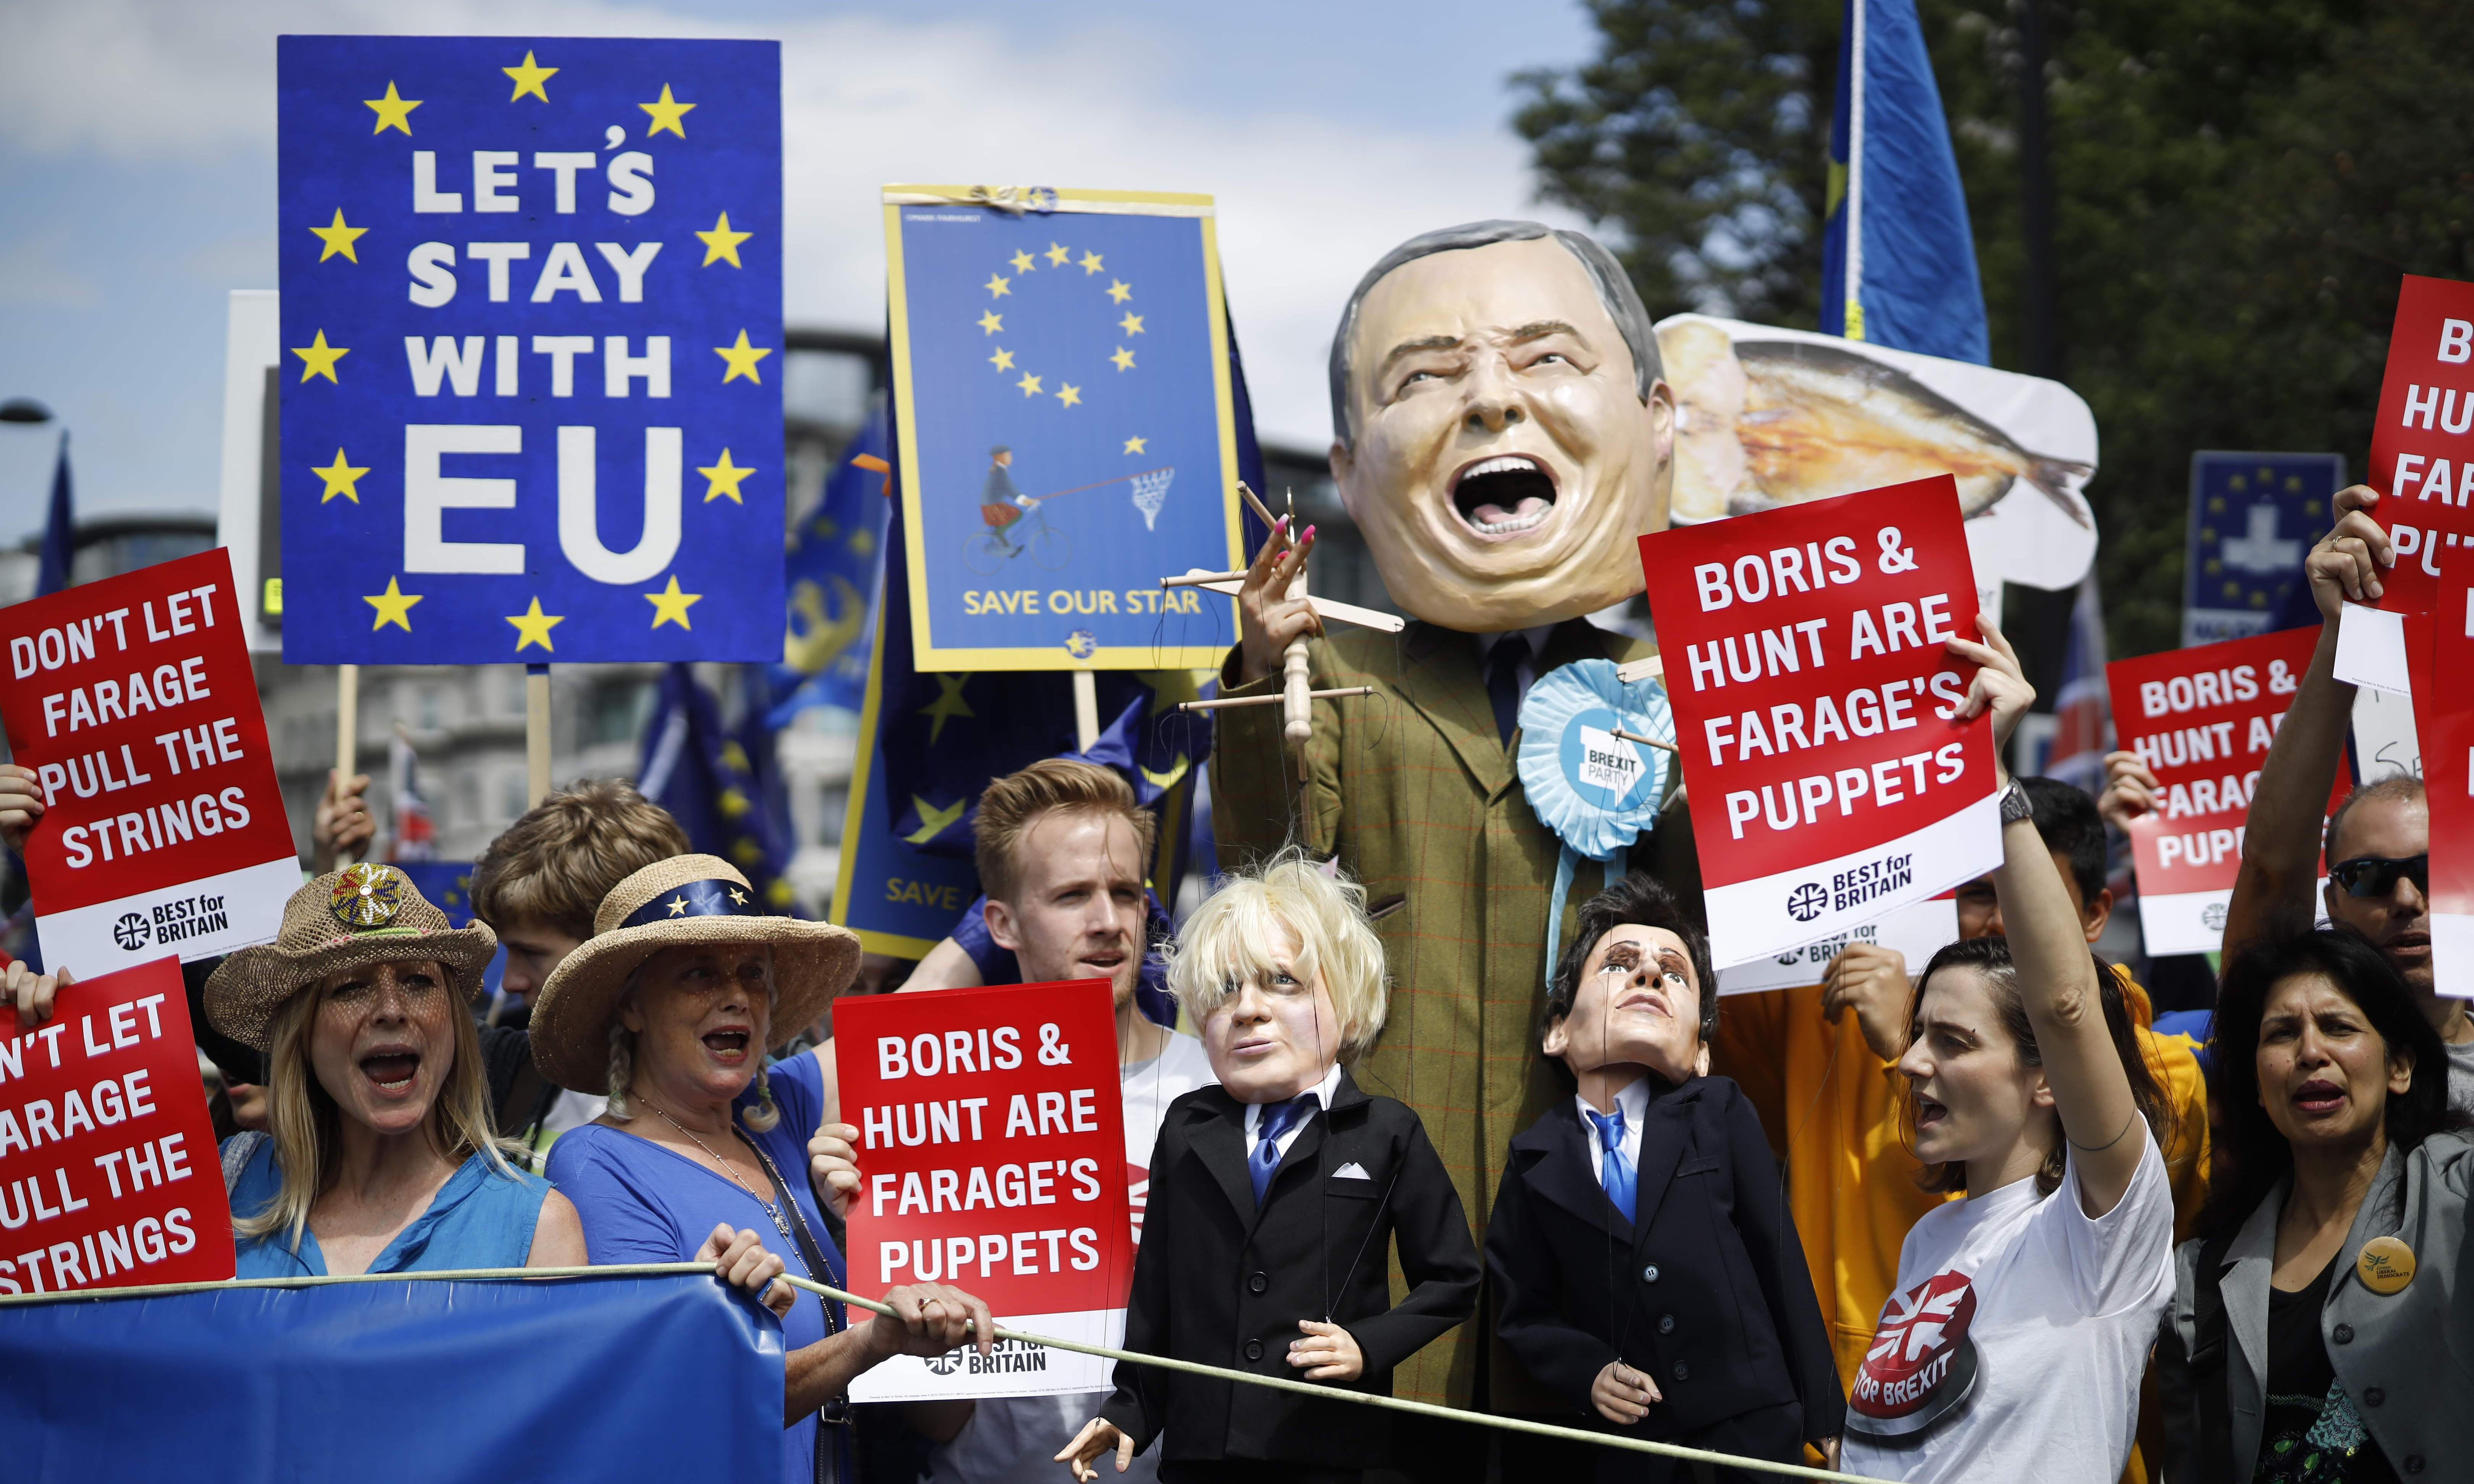 March for Change: anti-Brexit protesters take to London streets